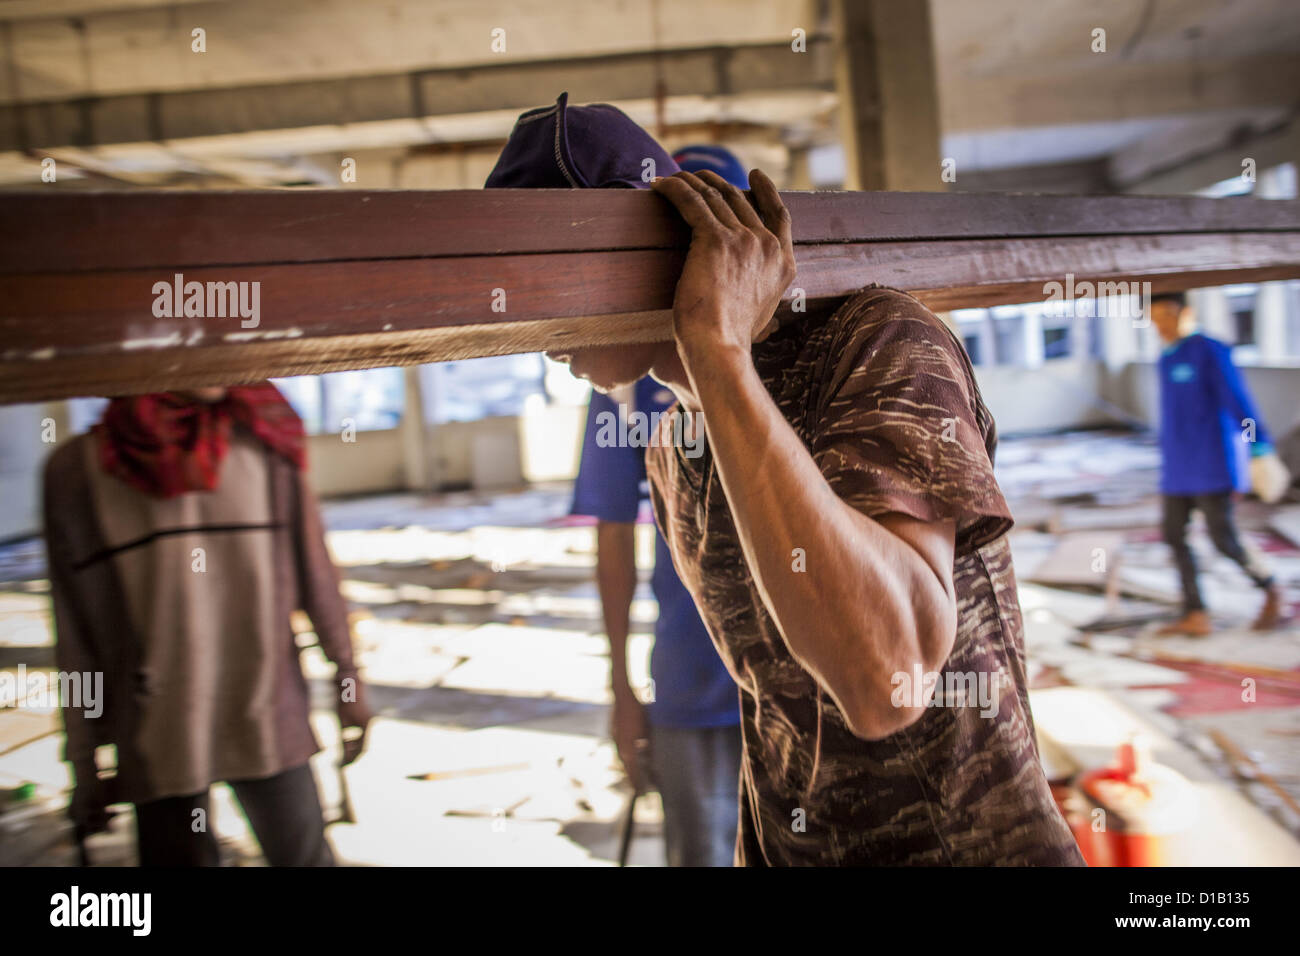 Dec. 13, 2012 - Bangkok, Thailand - A worker carries lumber to be recycled out of an empty building that is being - Stock Image